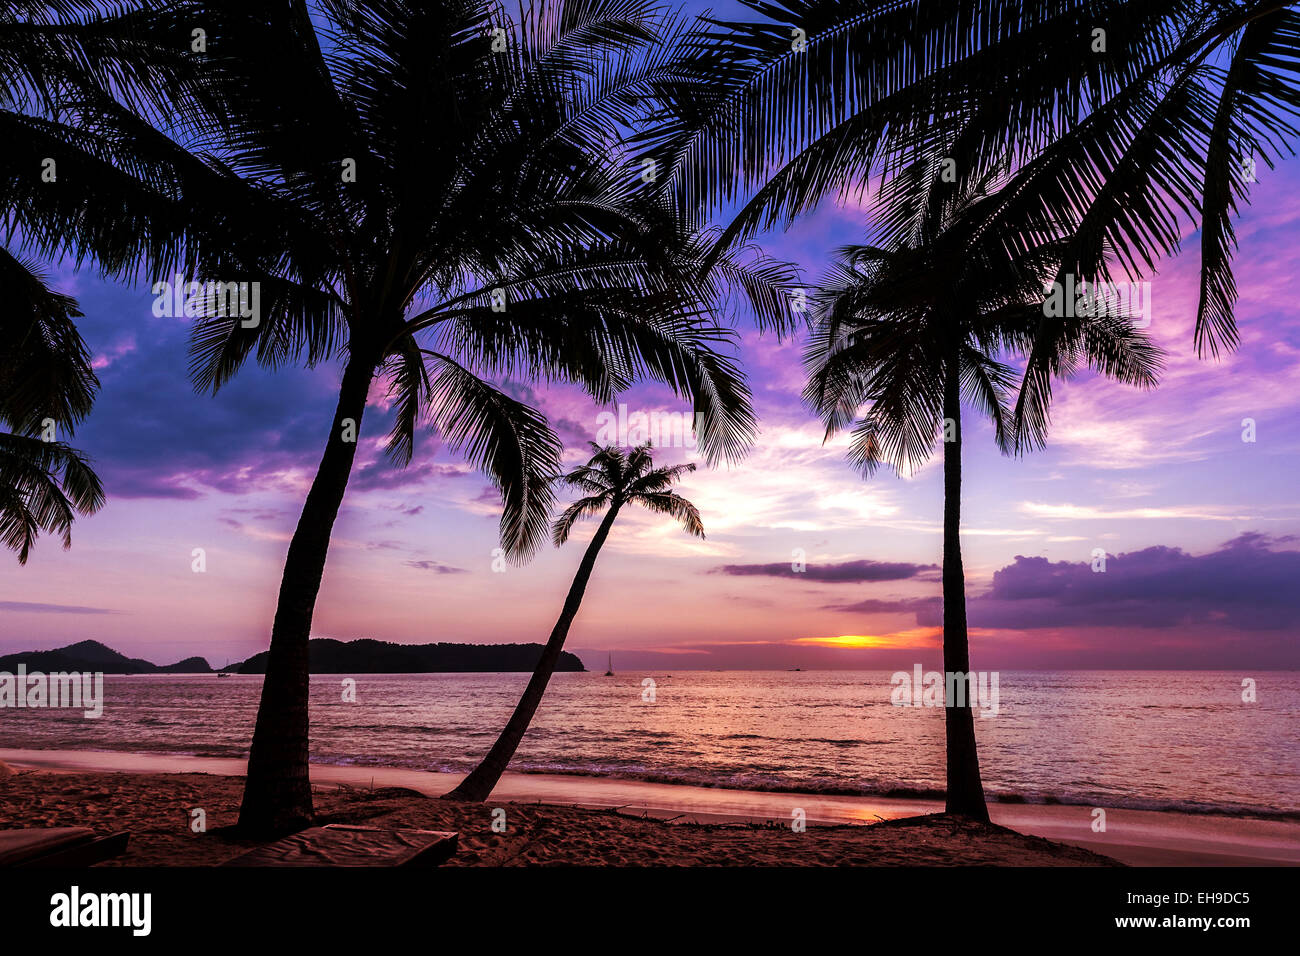 Holiday background made of palm trees silhouettes at sunset. - Stock Image